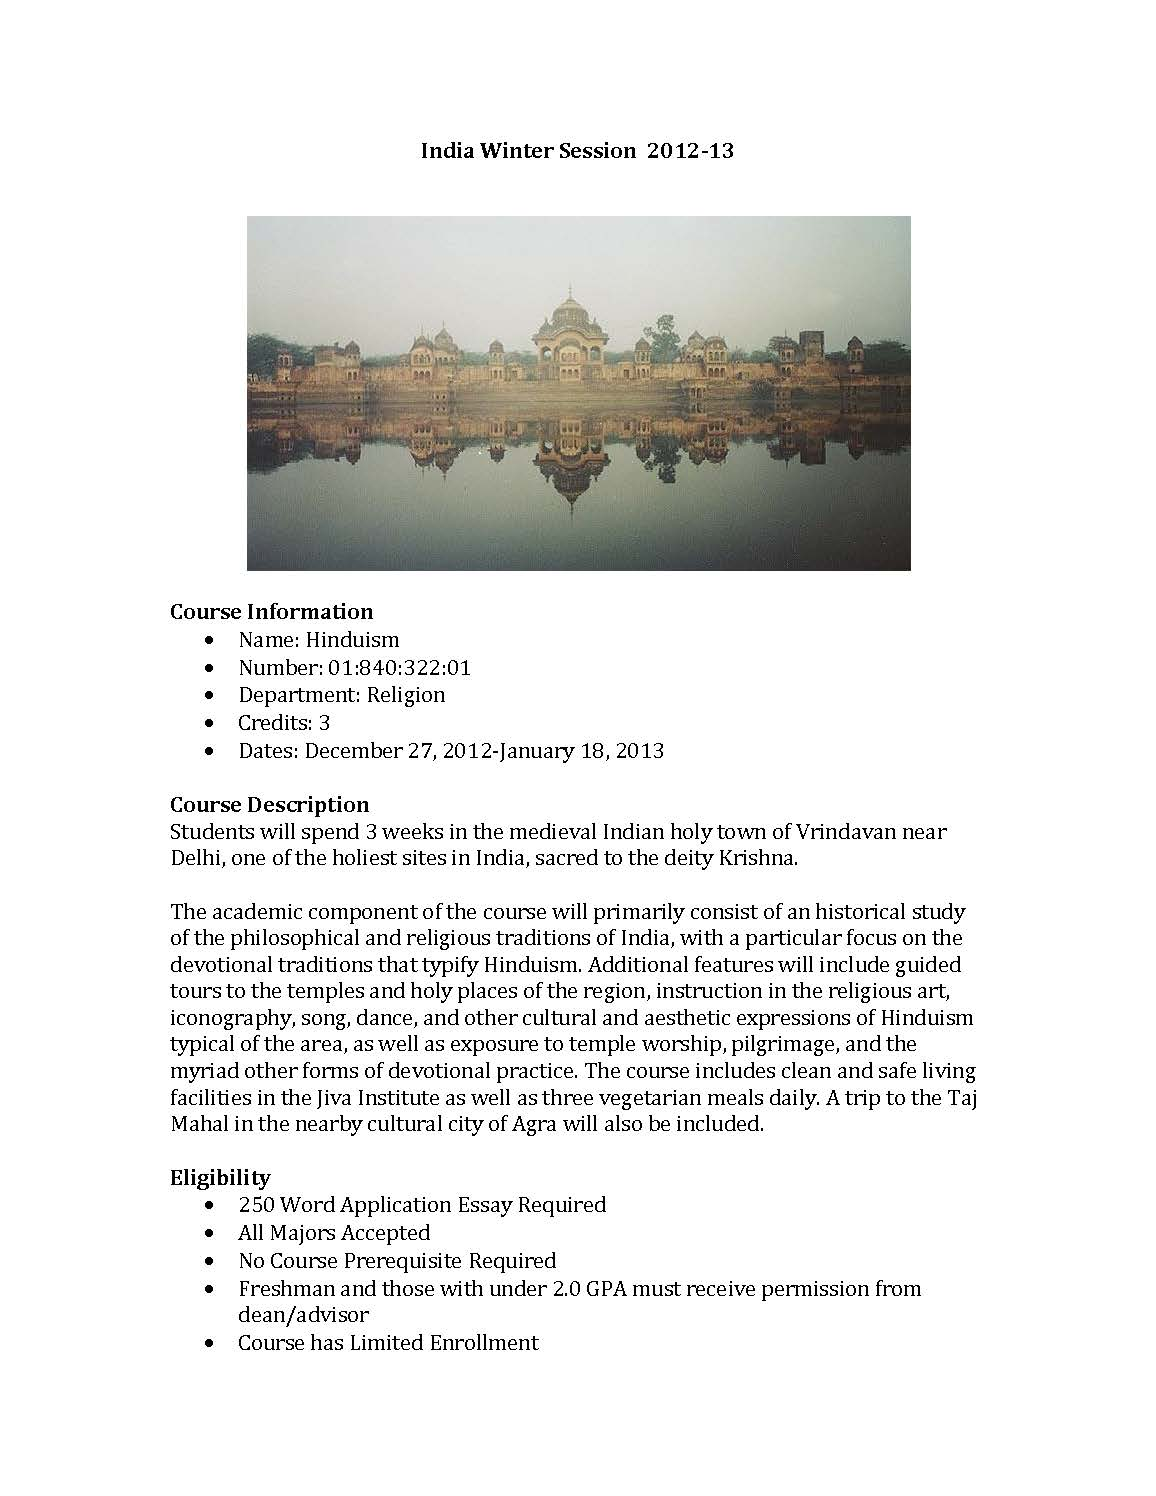 Study Abroad in India, Winter 2013